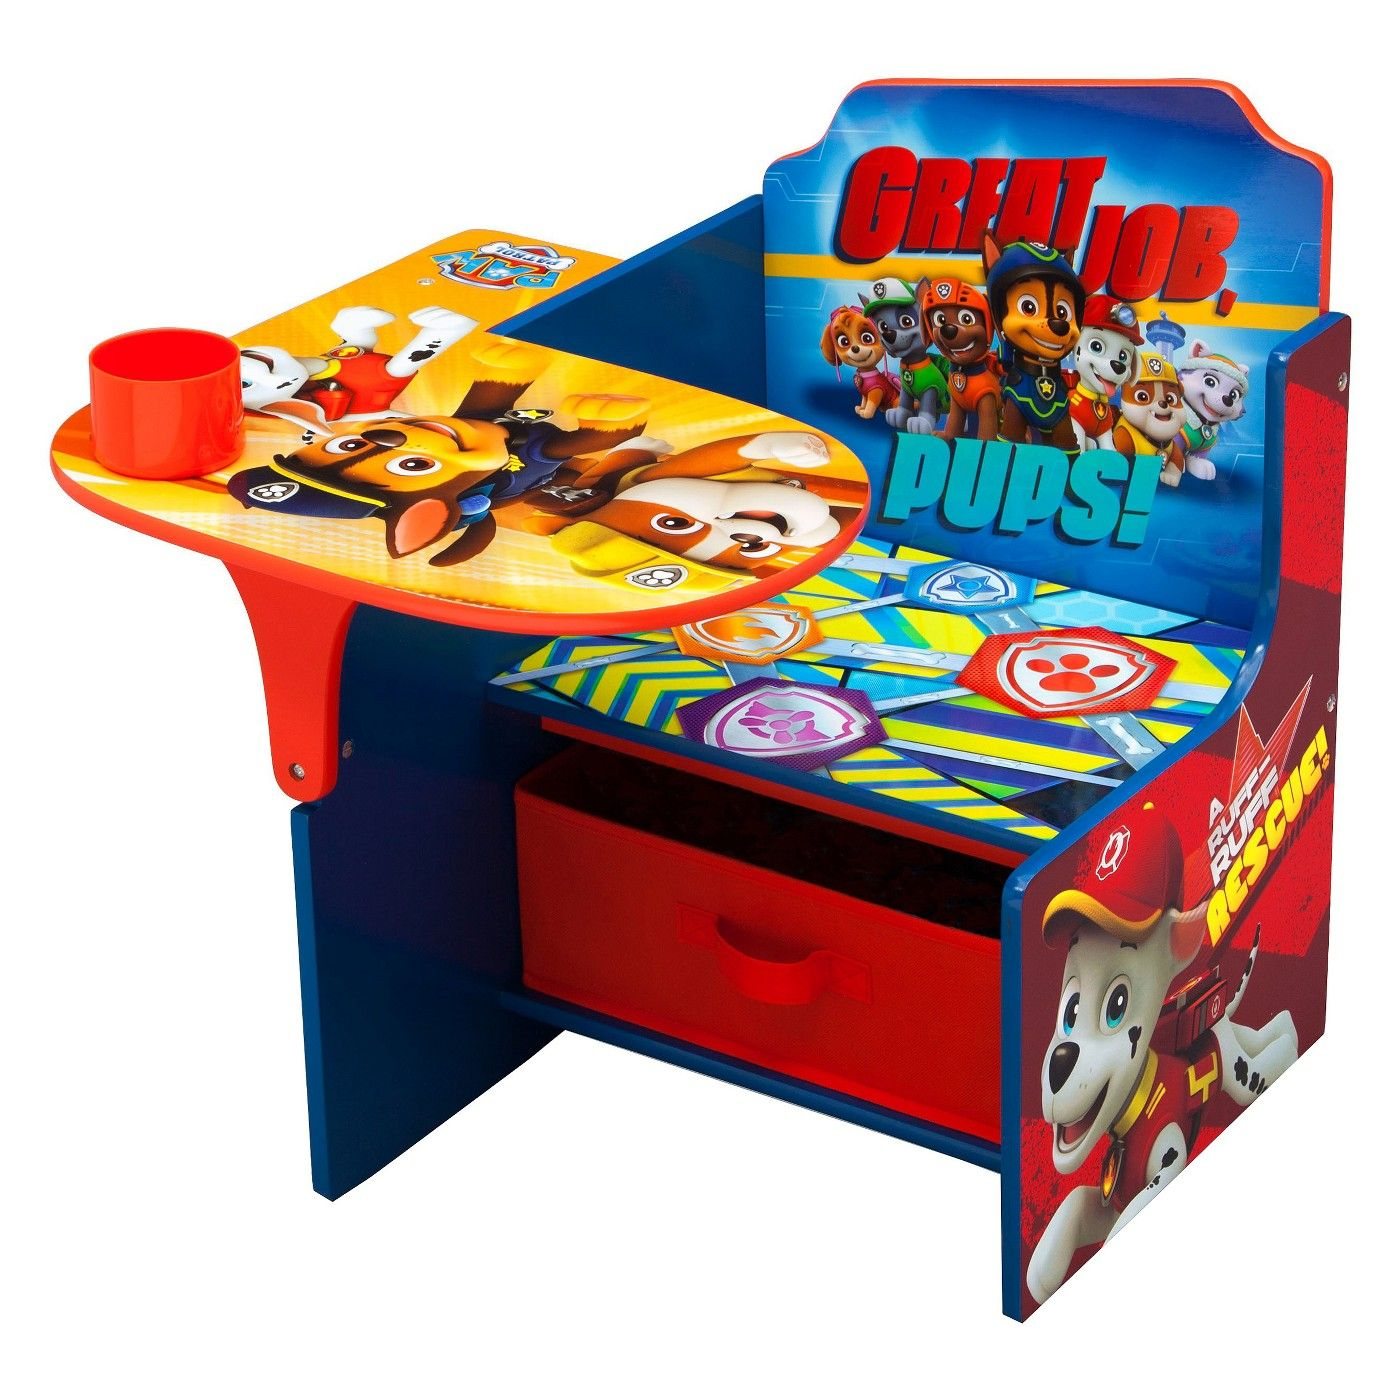 Nick jr paw patrol chair desk with storage bin paw patrol nick